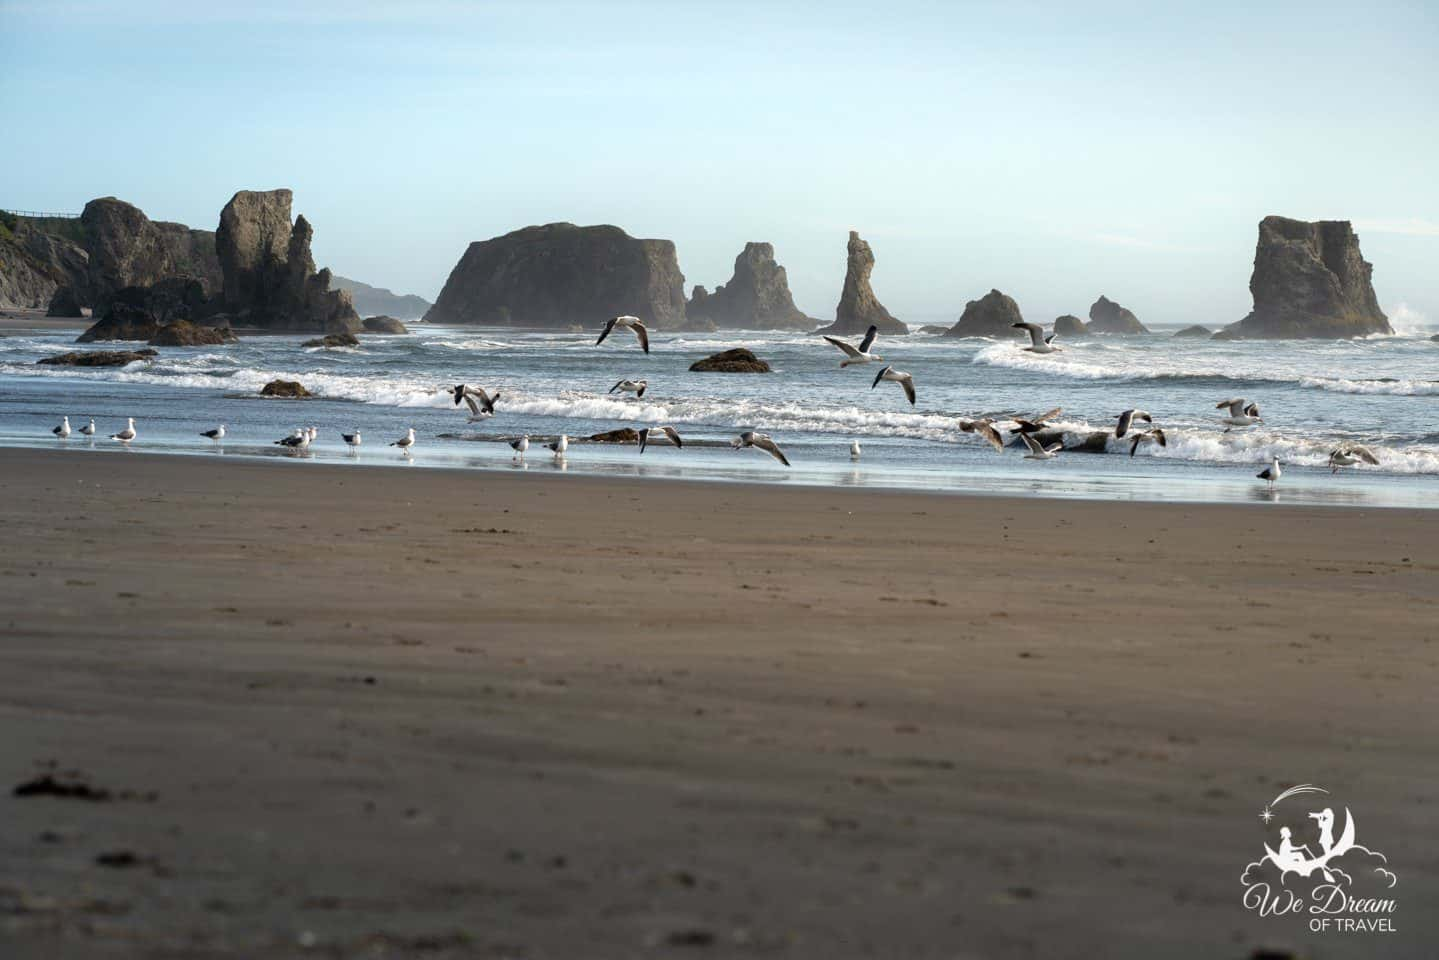 Seagulls take flight on the coast of Bandon, OR